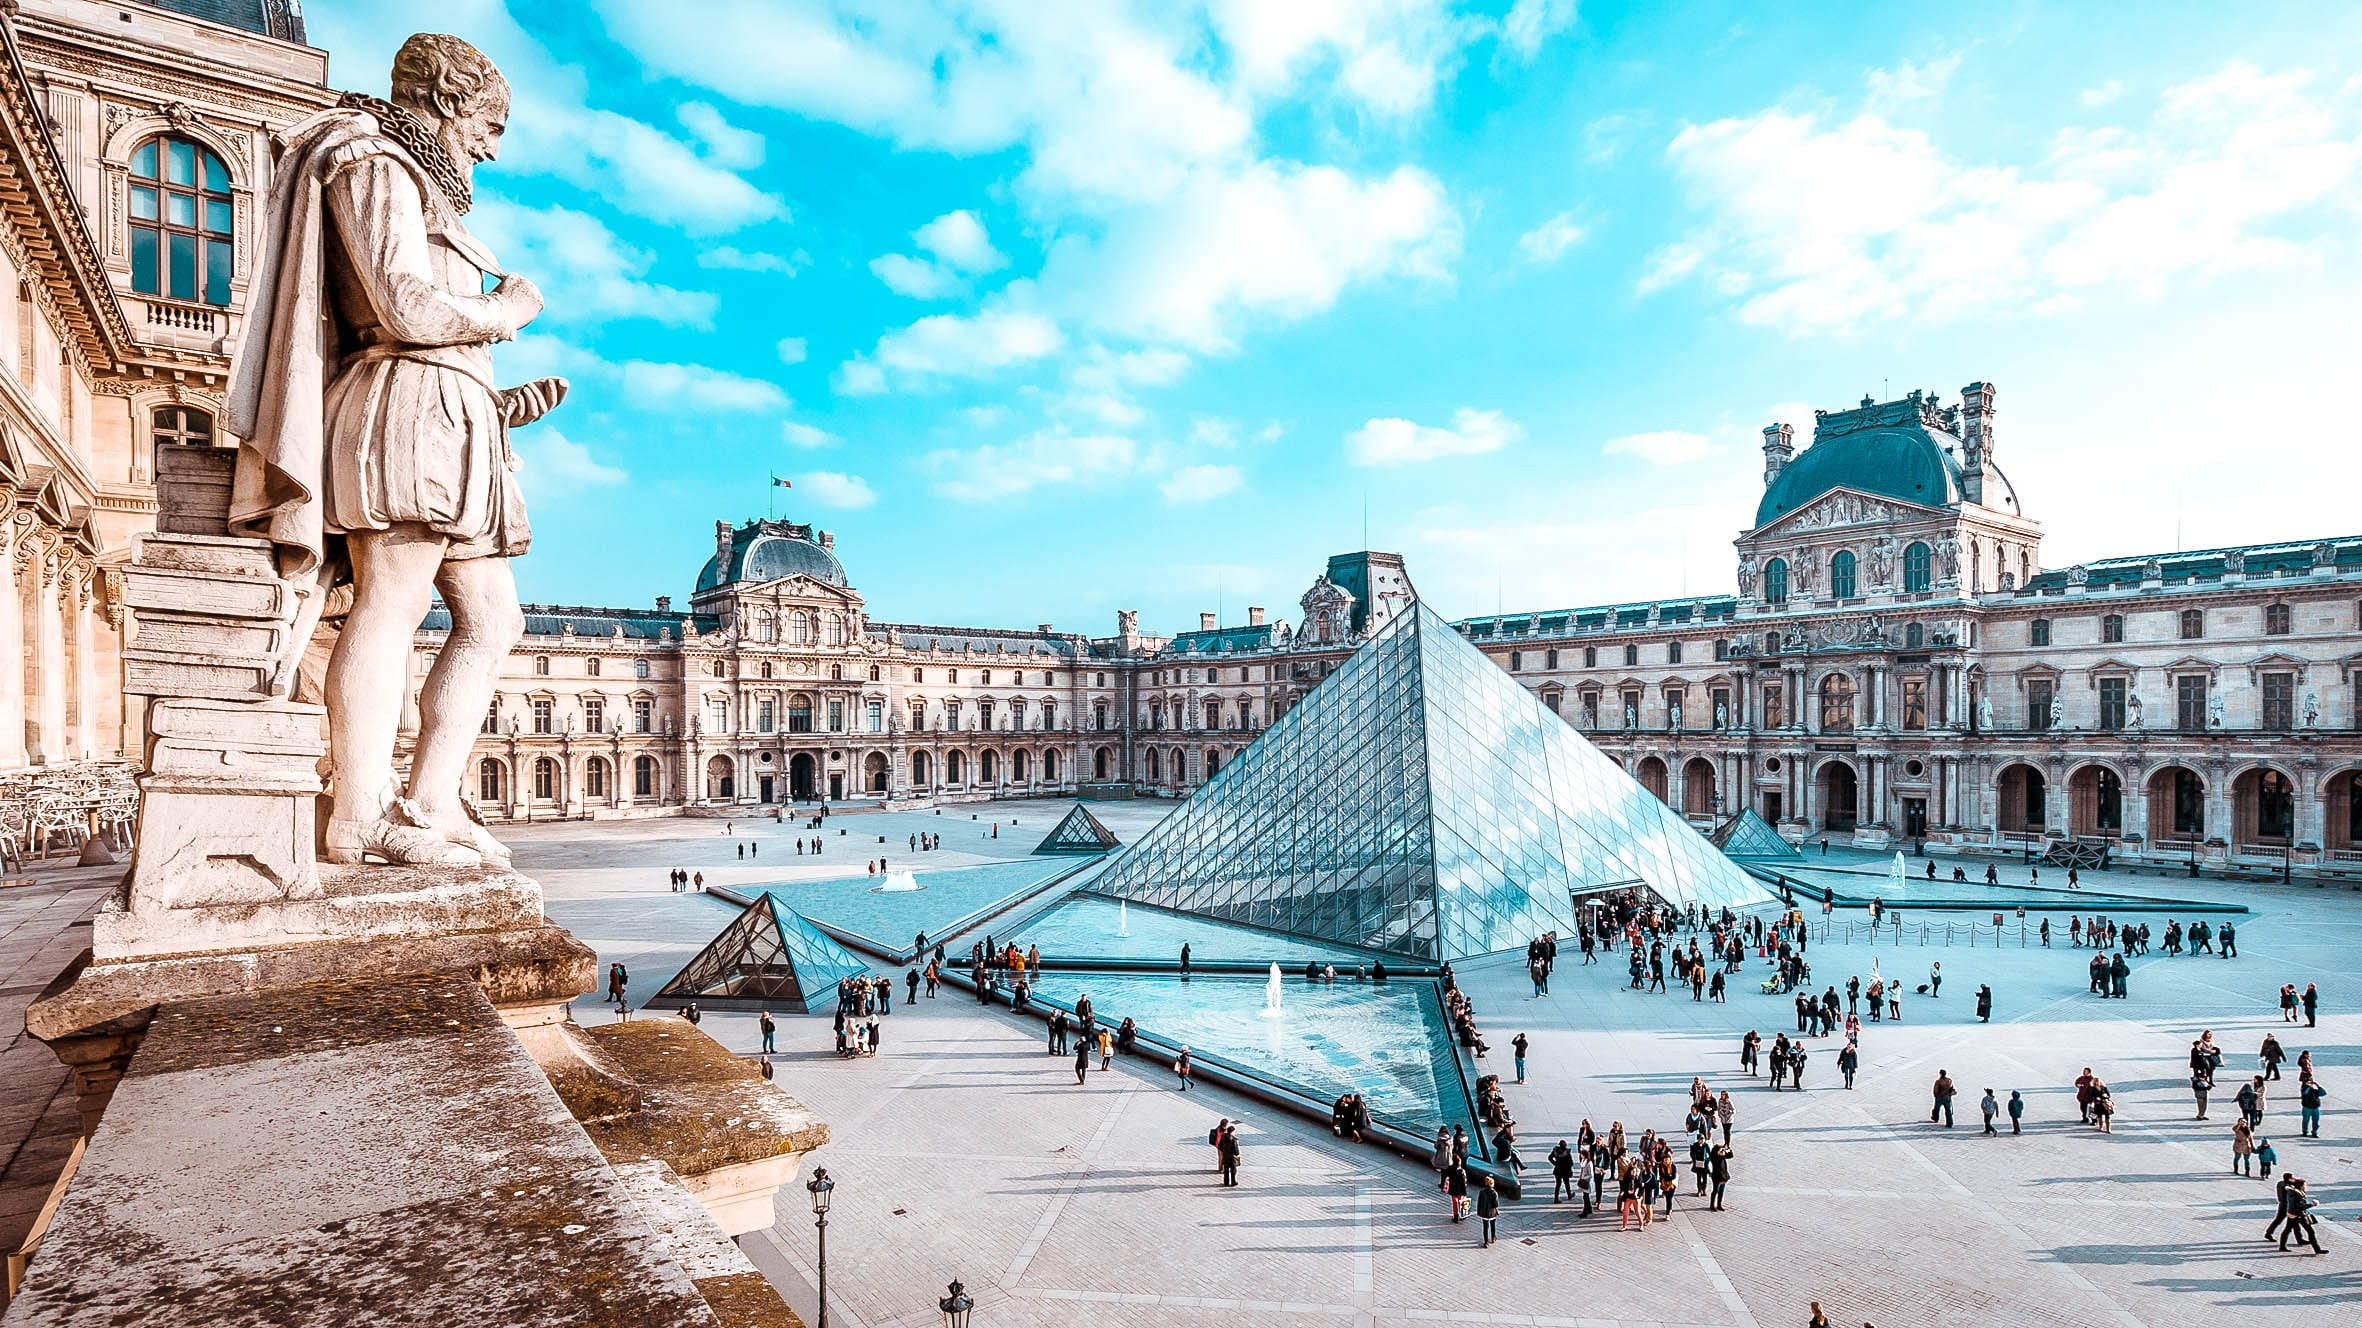 every first sunday of the month you can visit a lot of museums such as the louvre for free